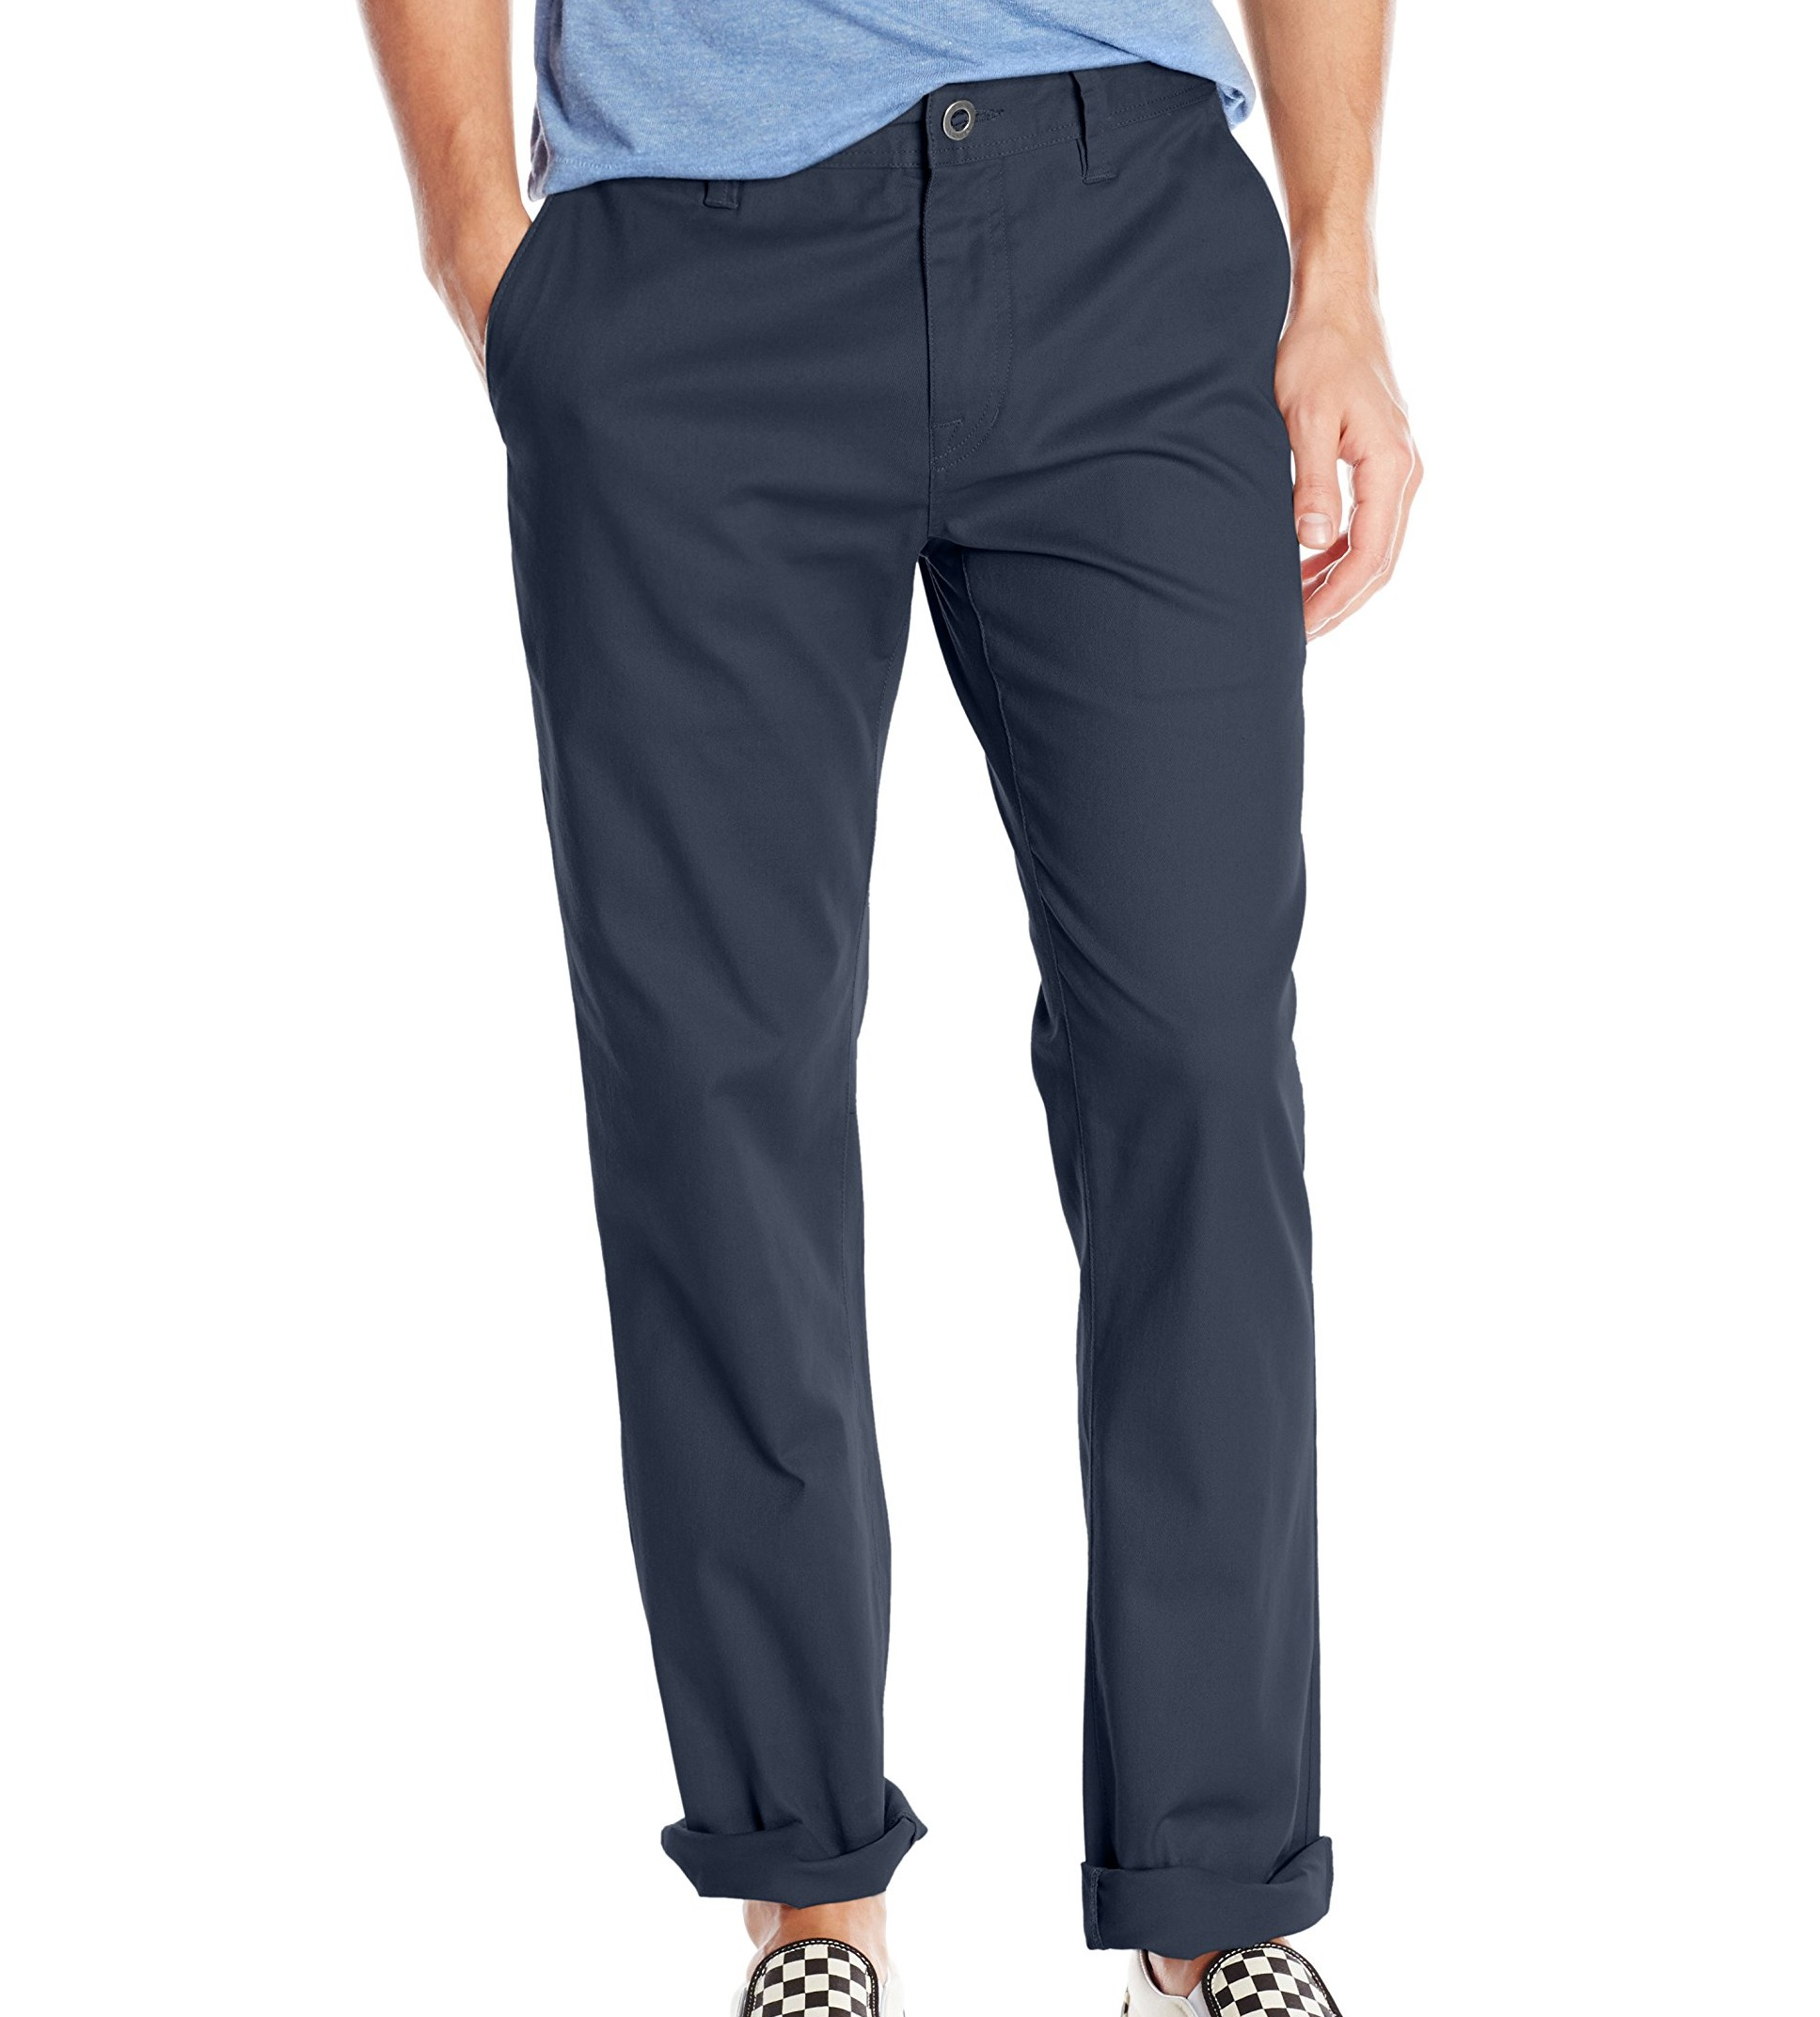 Volcom-Mens-Pants-Blue-Size-32X30-Modern-Fit-Zip-Fly-Chinos-Stretch